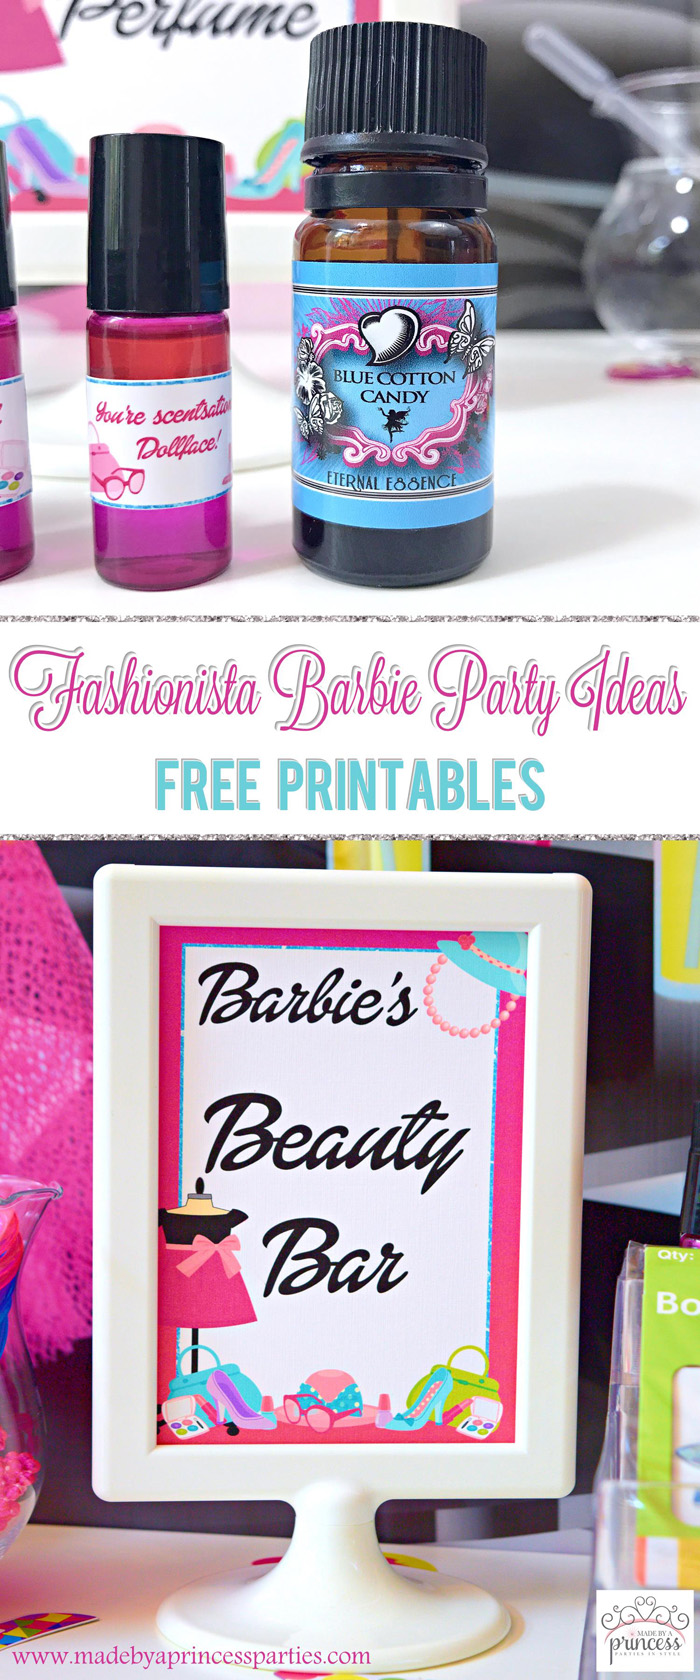 Fashionista Barbie Party Ideas Pin It - Made by a Princess #barbie #barbieparty